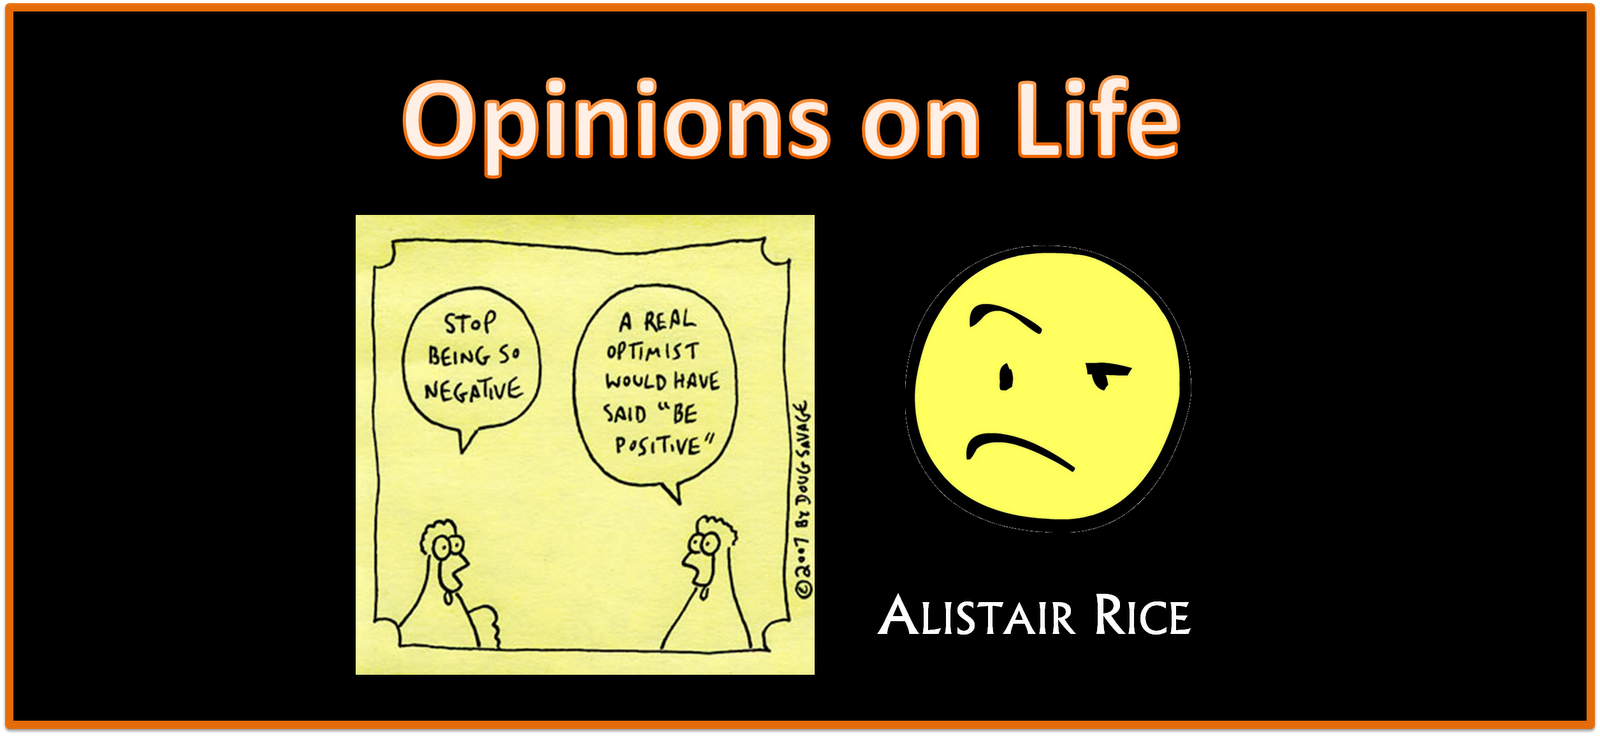 Opinions on Life